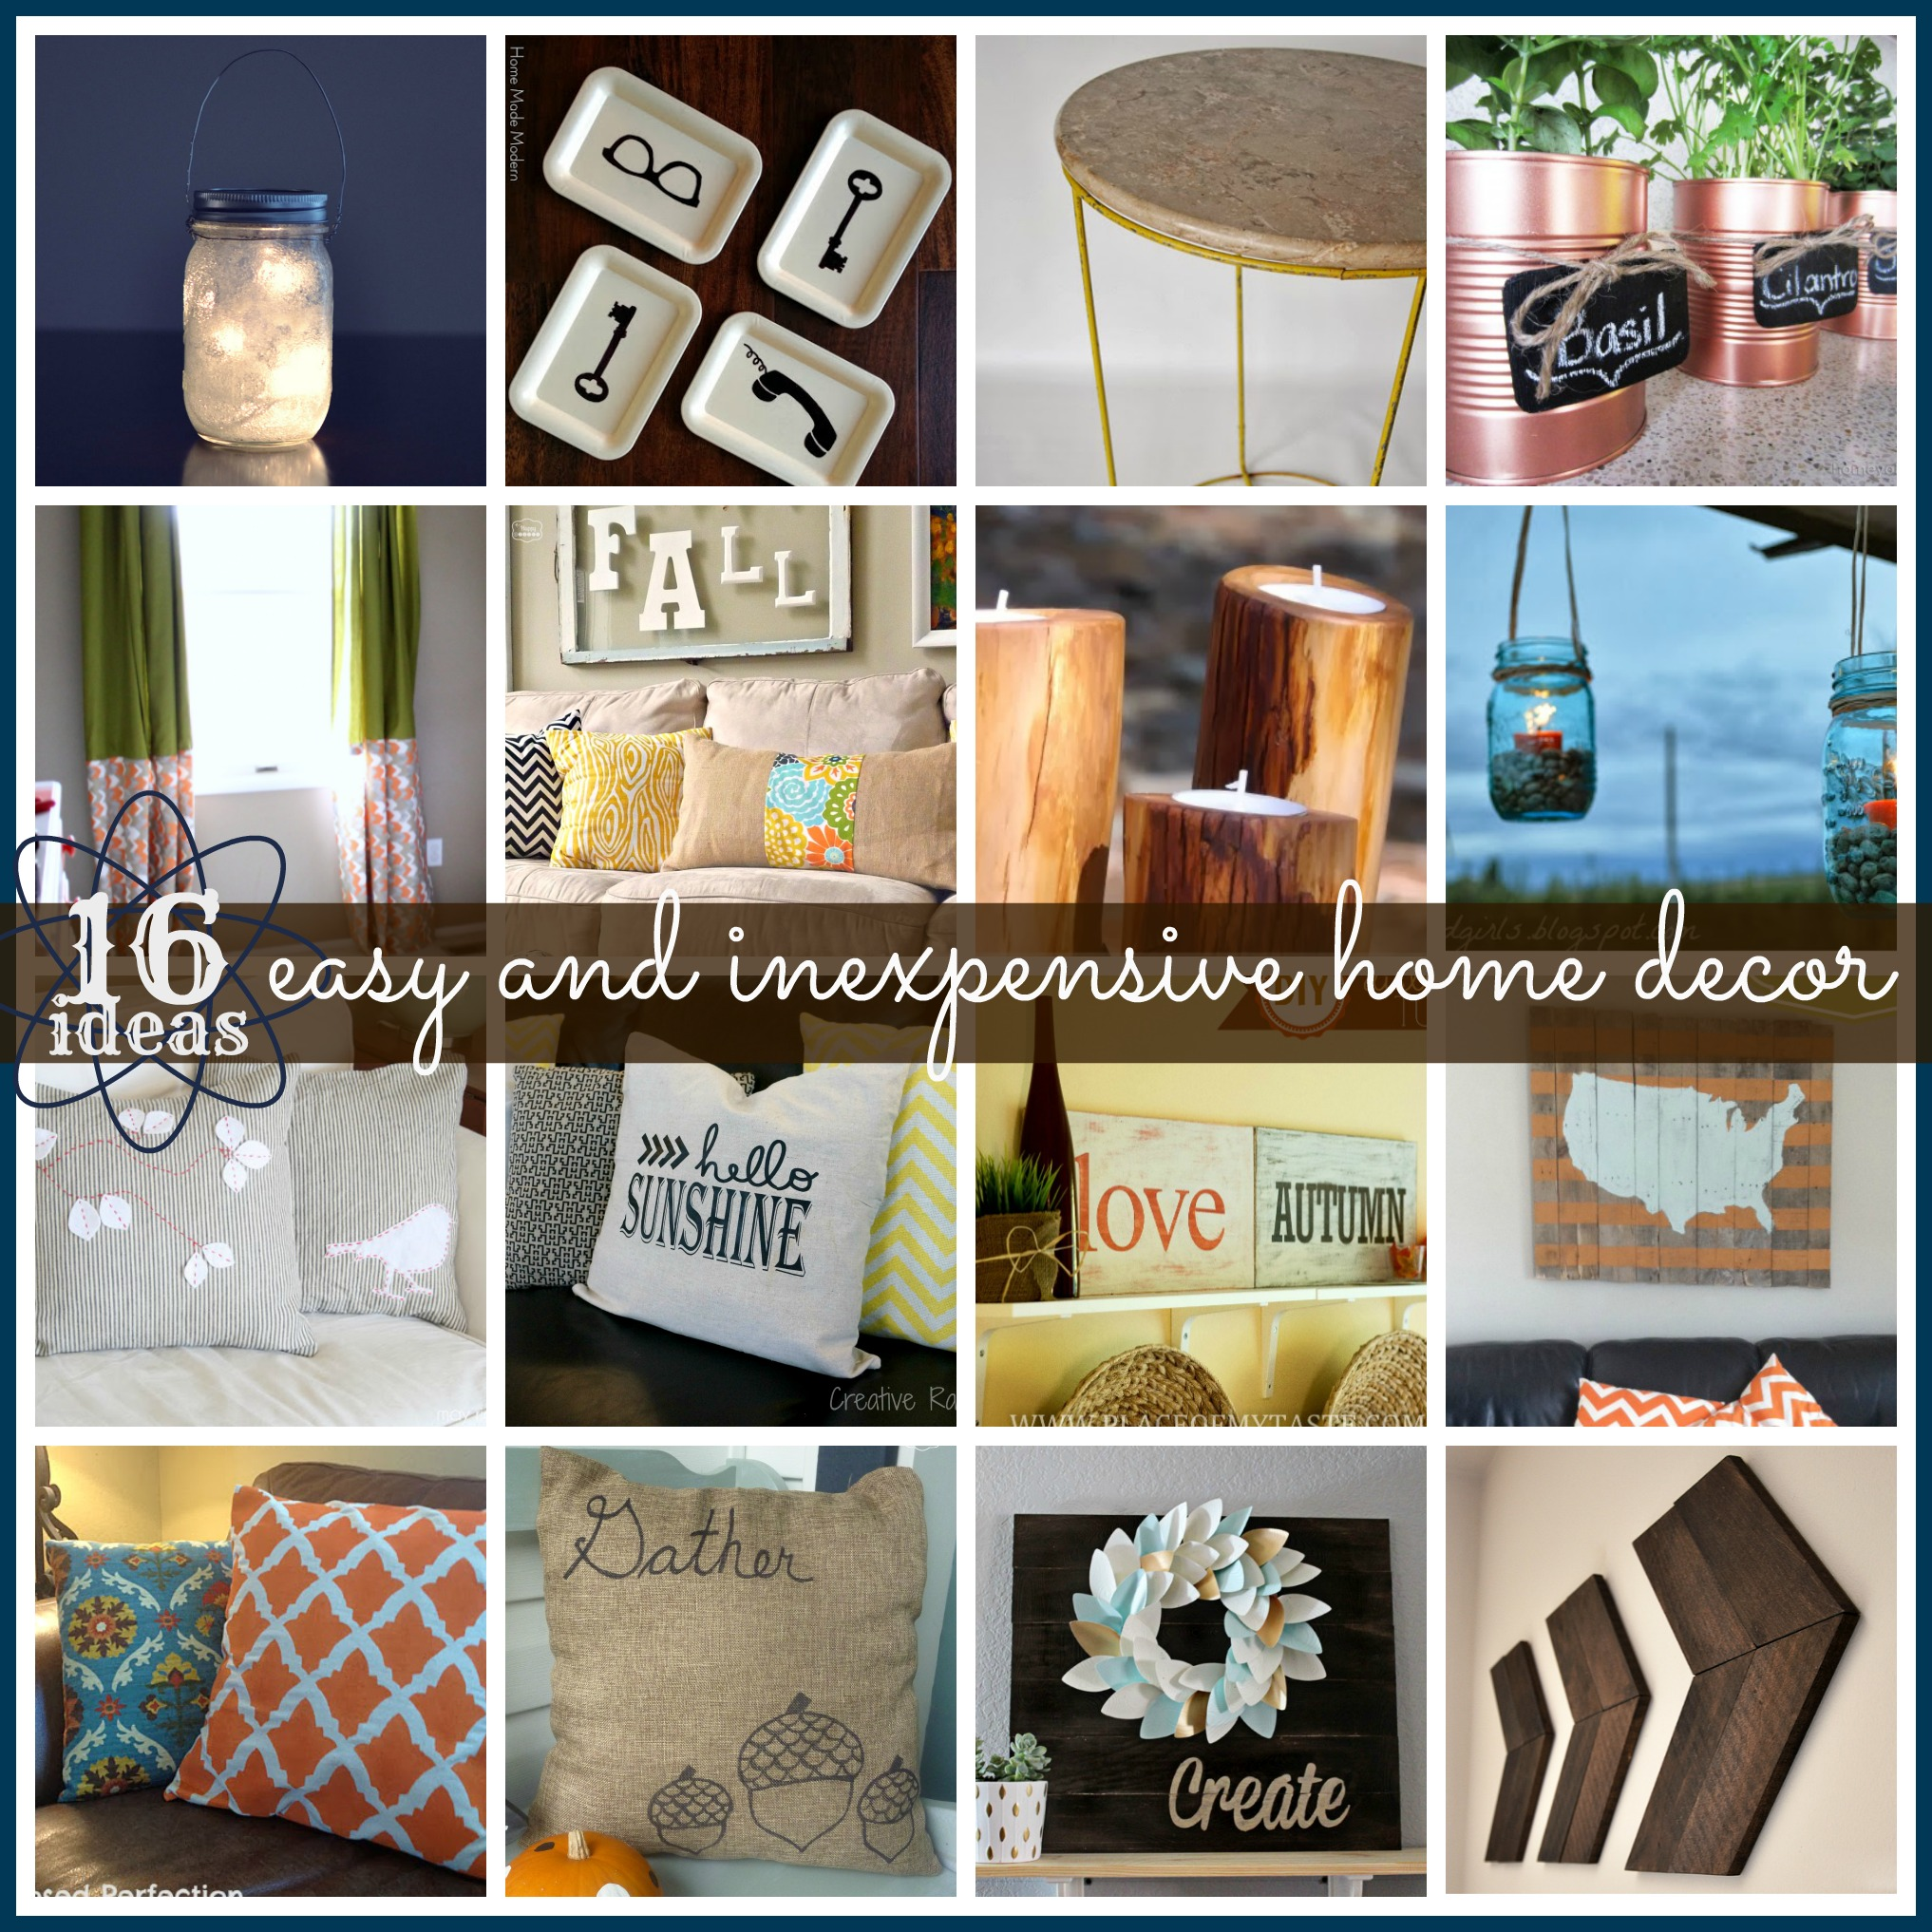 16 Easy Home Decor Ideas for inspiration after the holidays! #features #homedecor